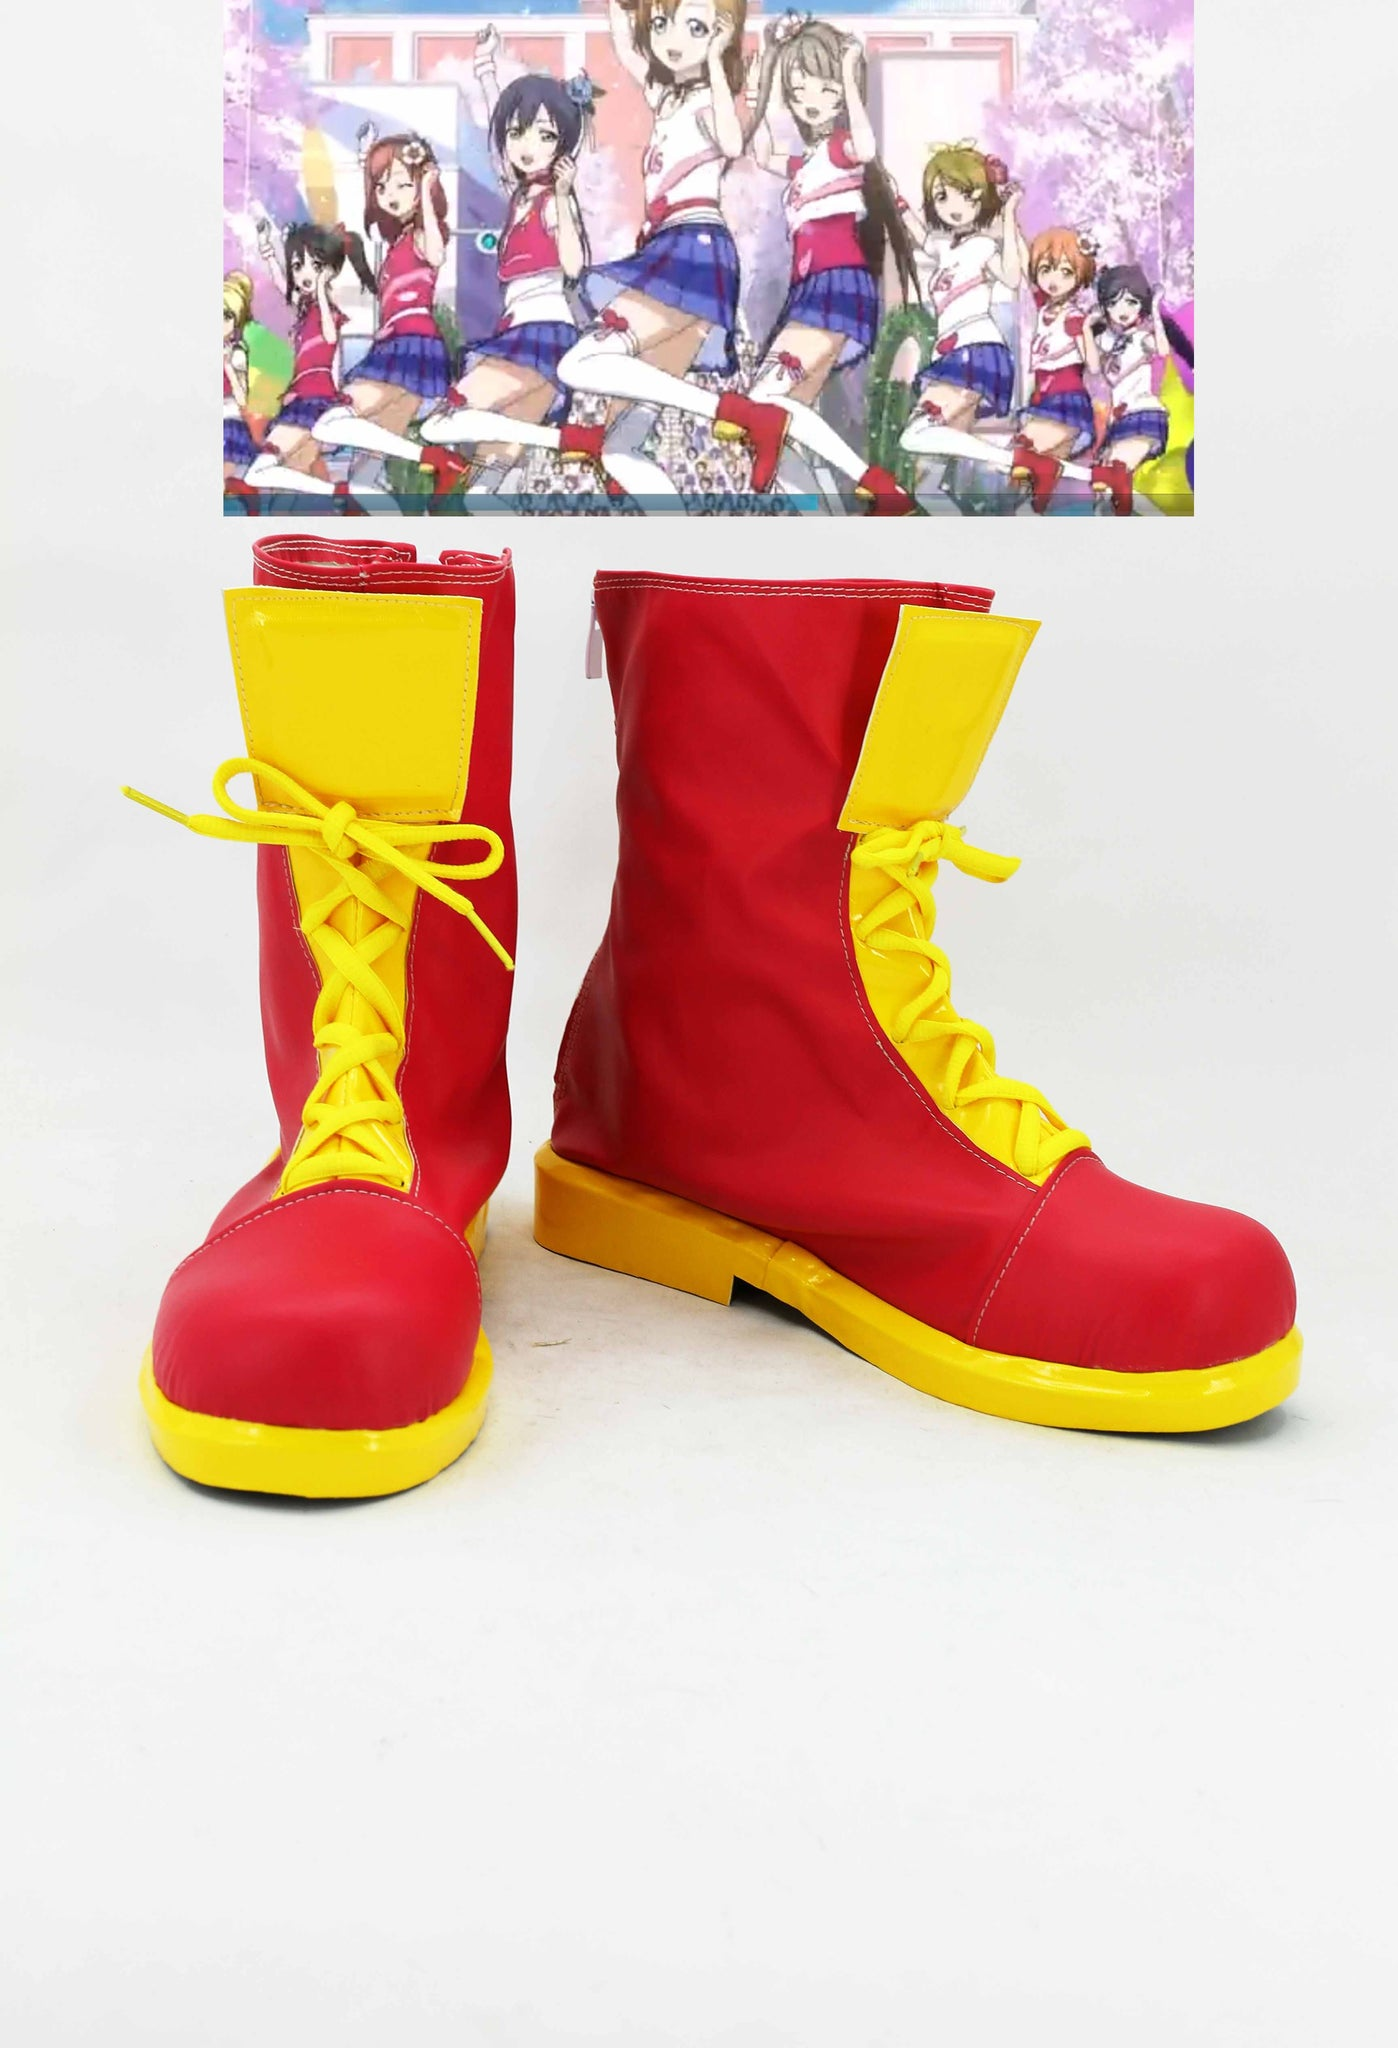 LoveLive! Happy Maker Cosplay Chaussures